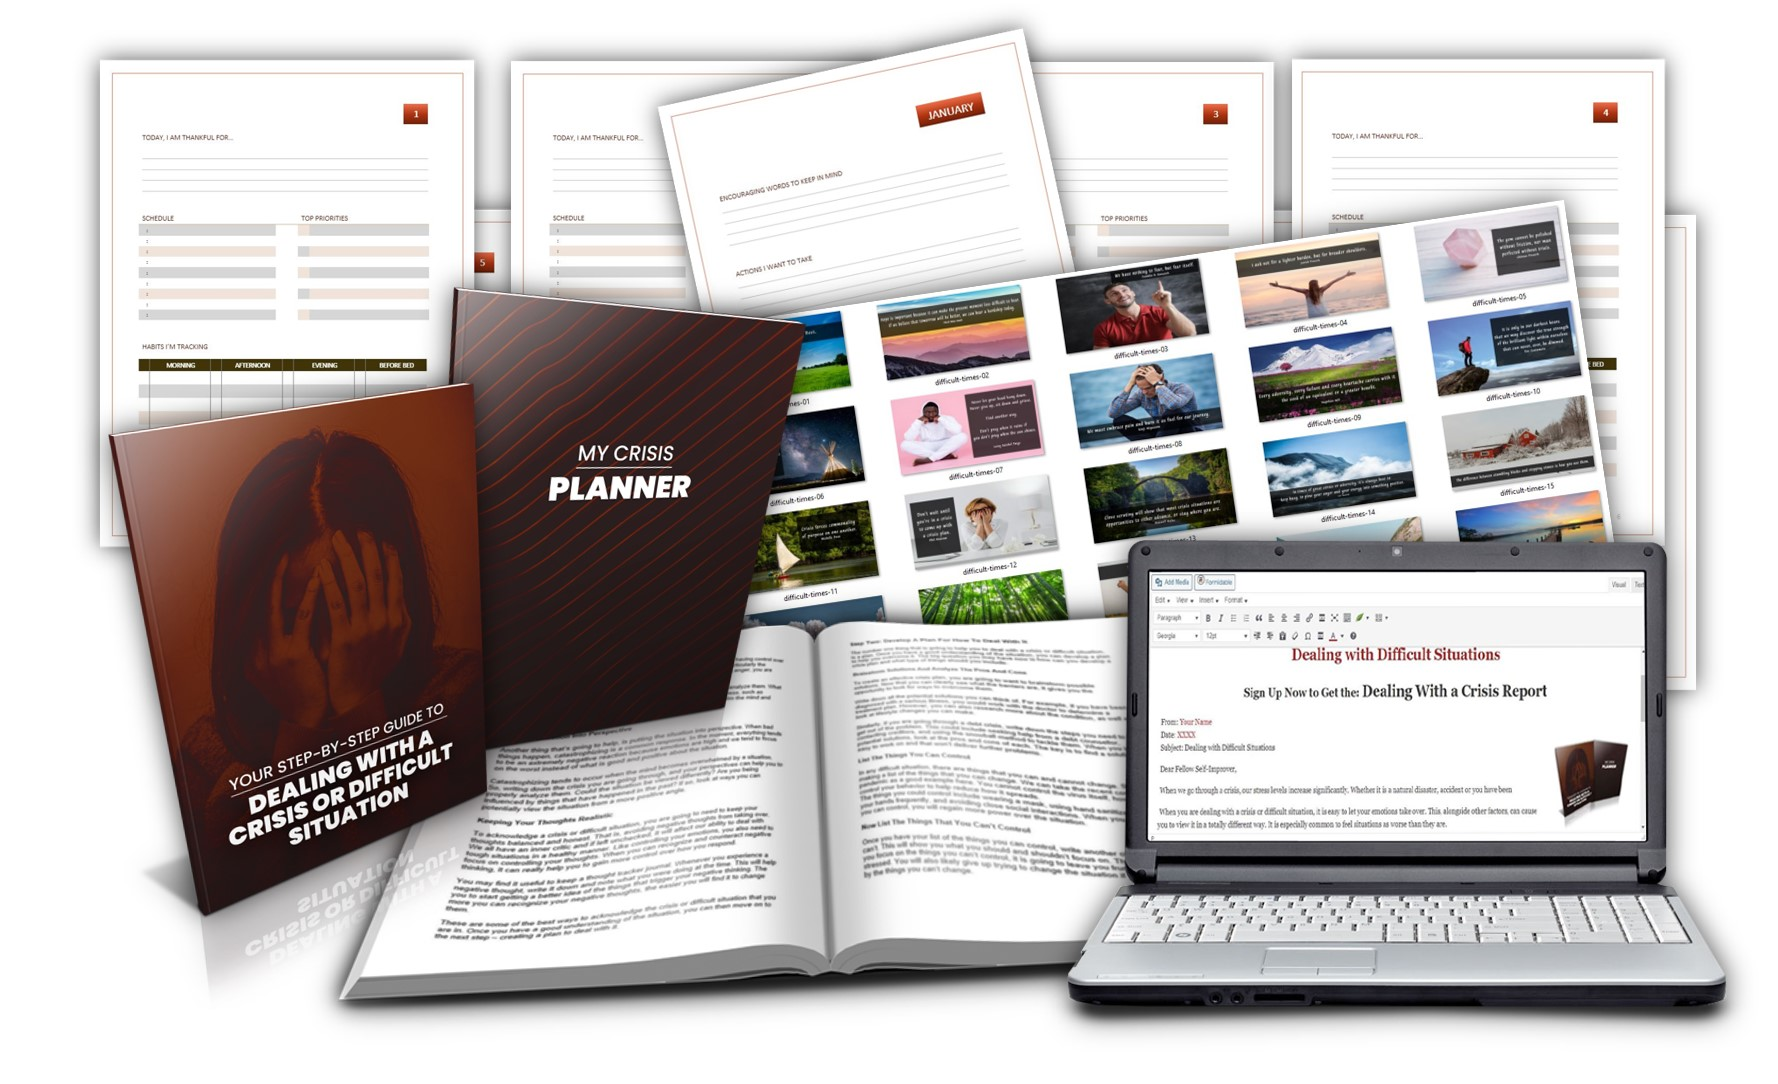 Dealing with a Crisis PLR Planner Pack